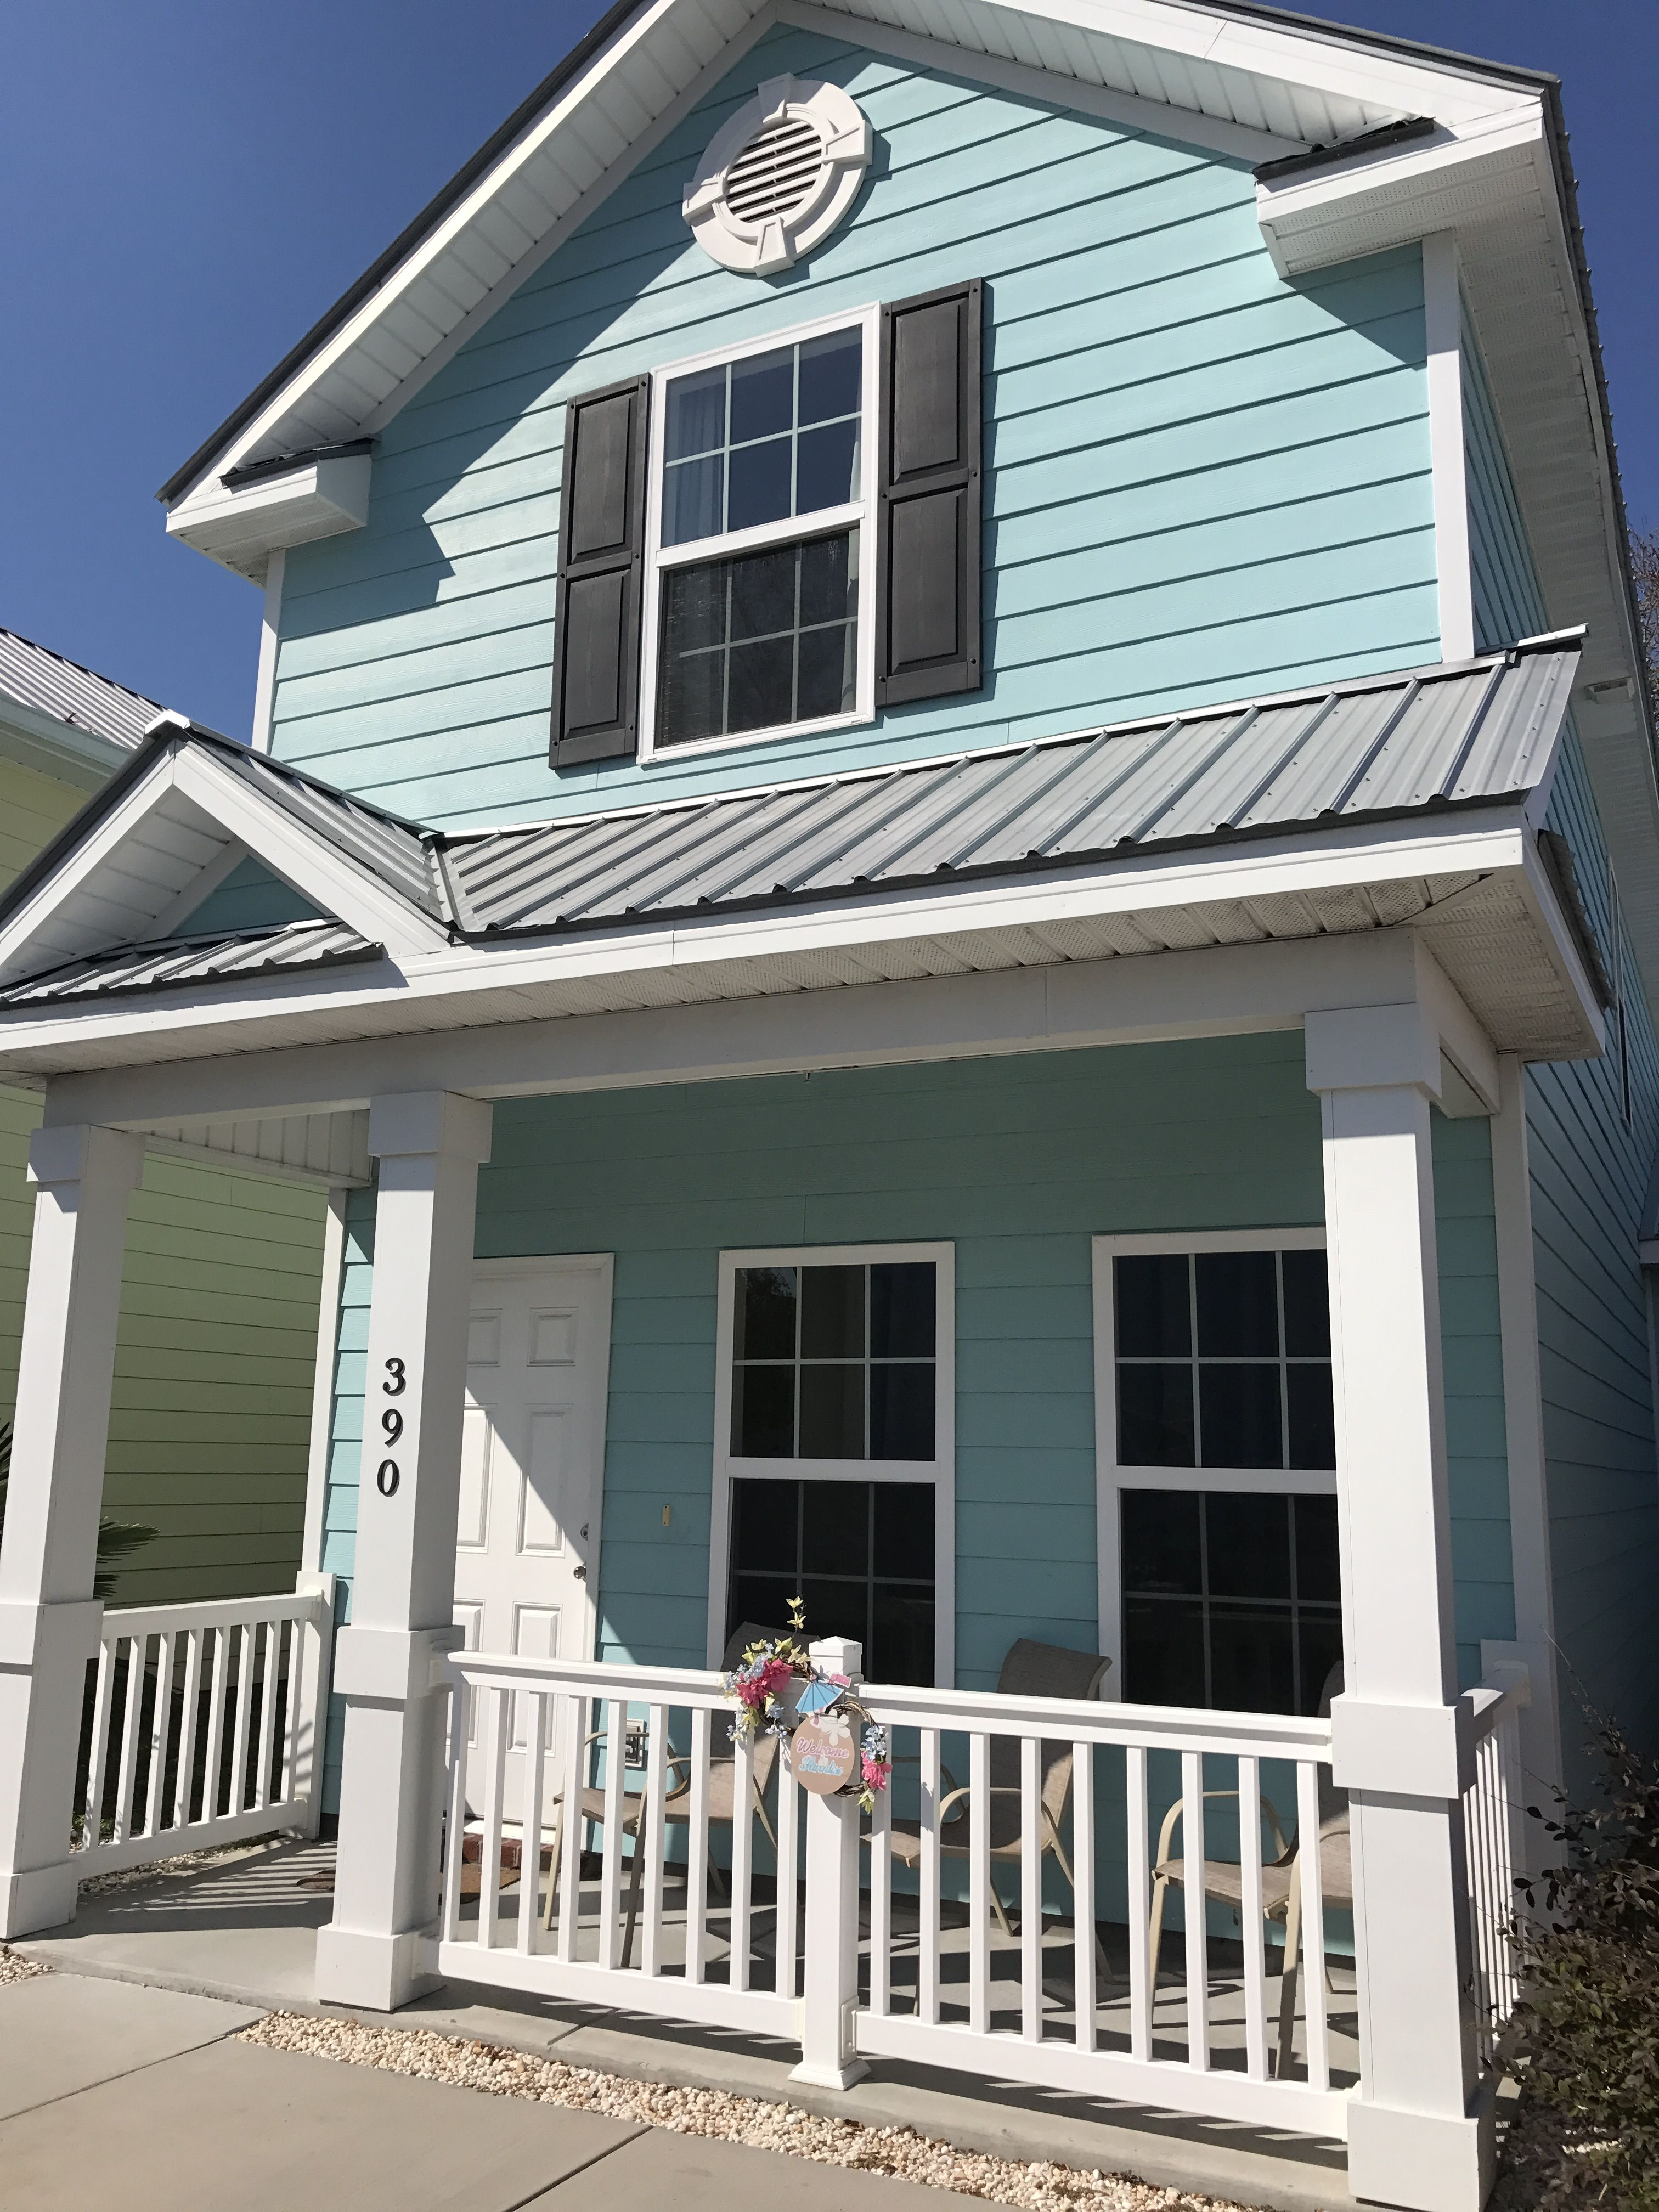 Pin by Myrtle Beach South Carolina Real Estate Experts on ...